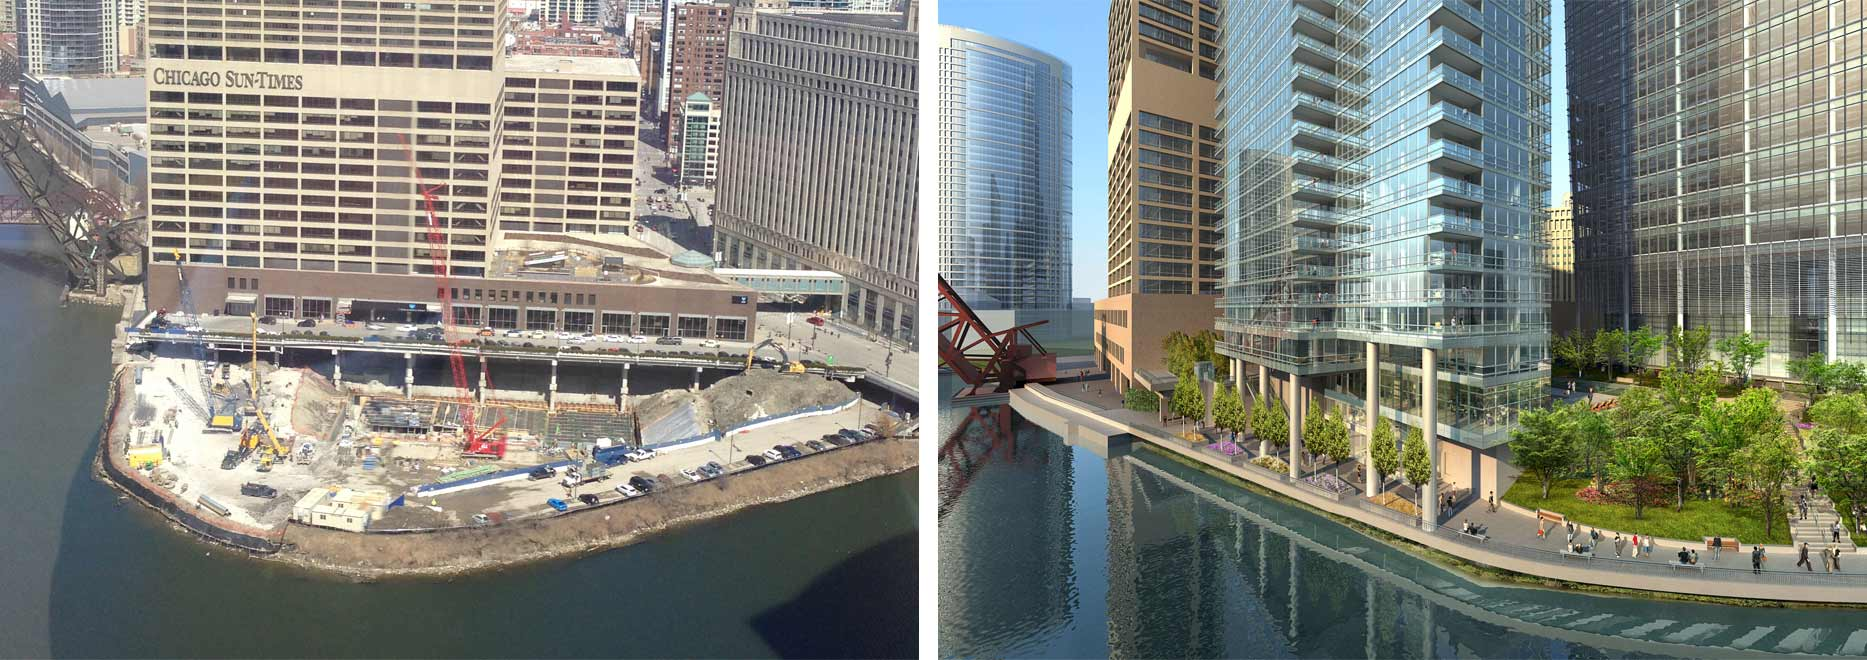 Construction Underway for bKL's Wolf Point Project